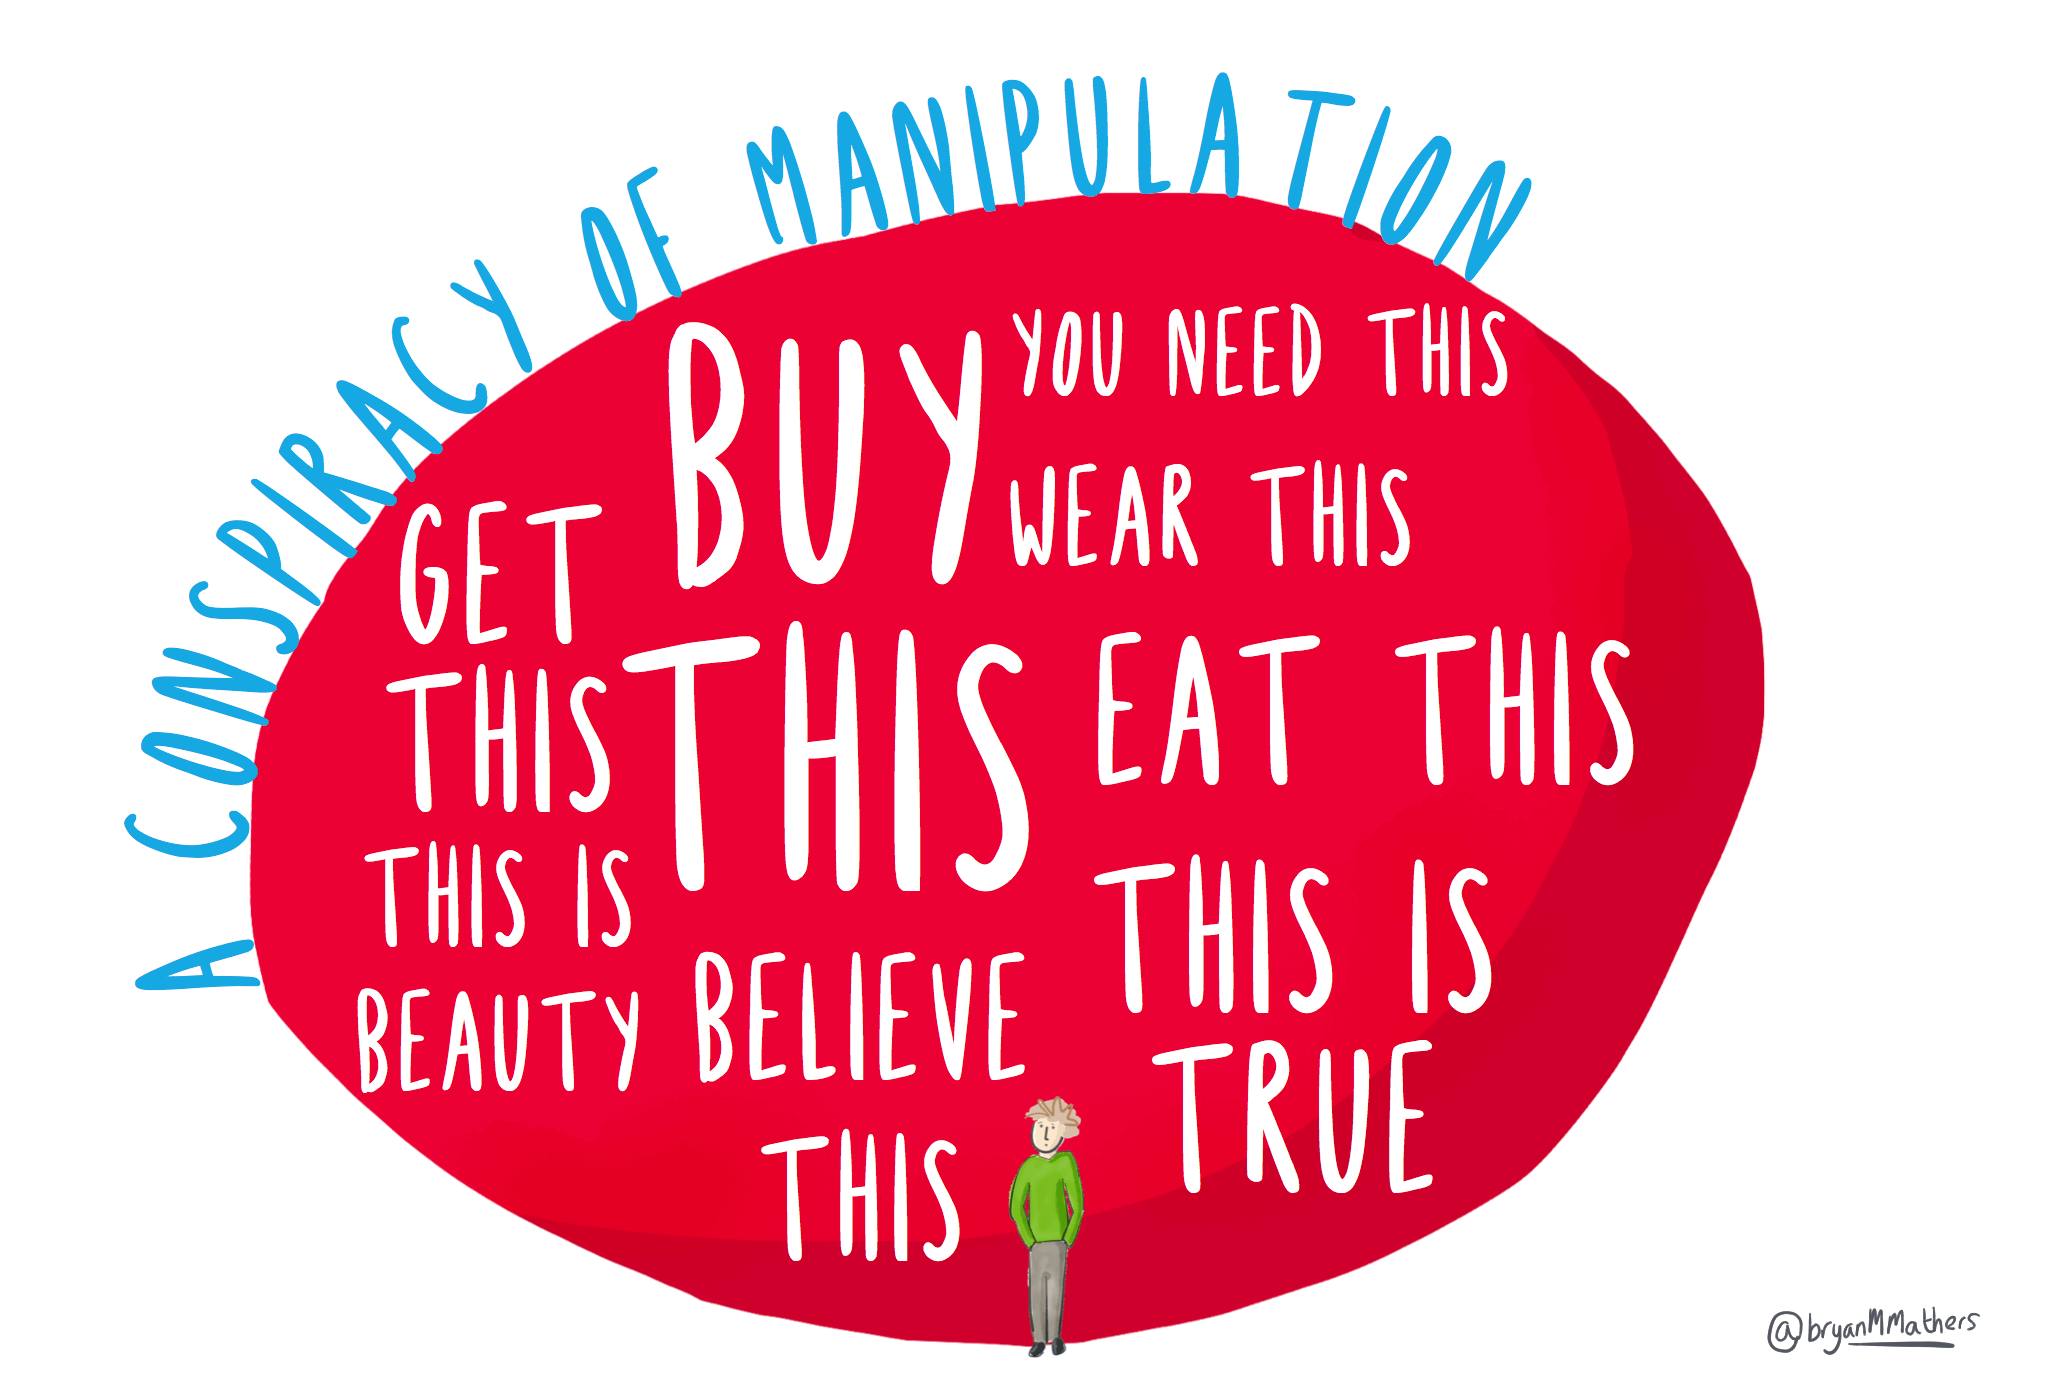 A Conspiracy of Manipulation